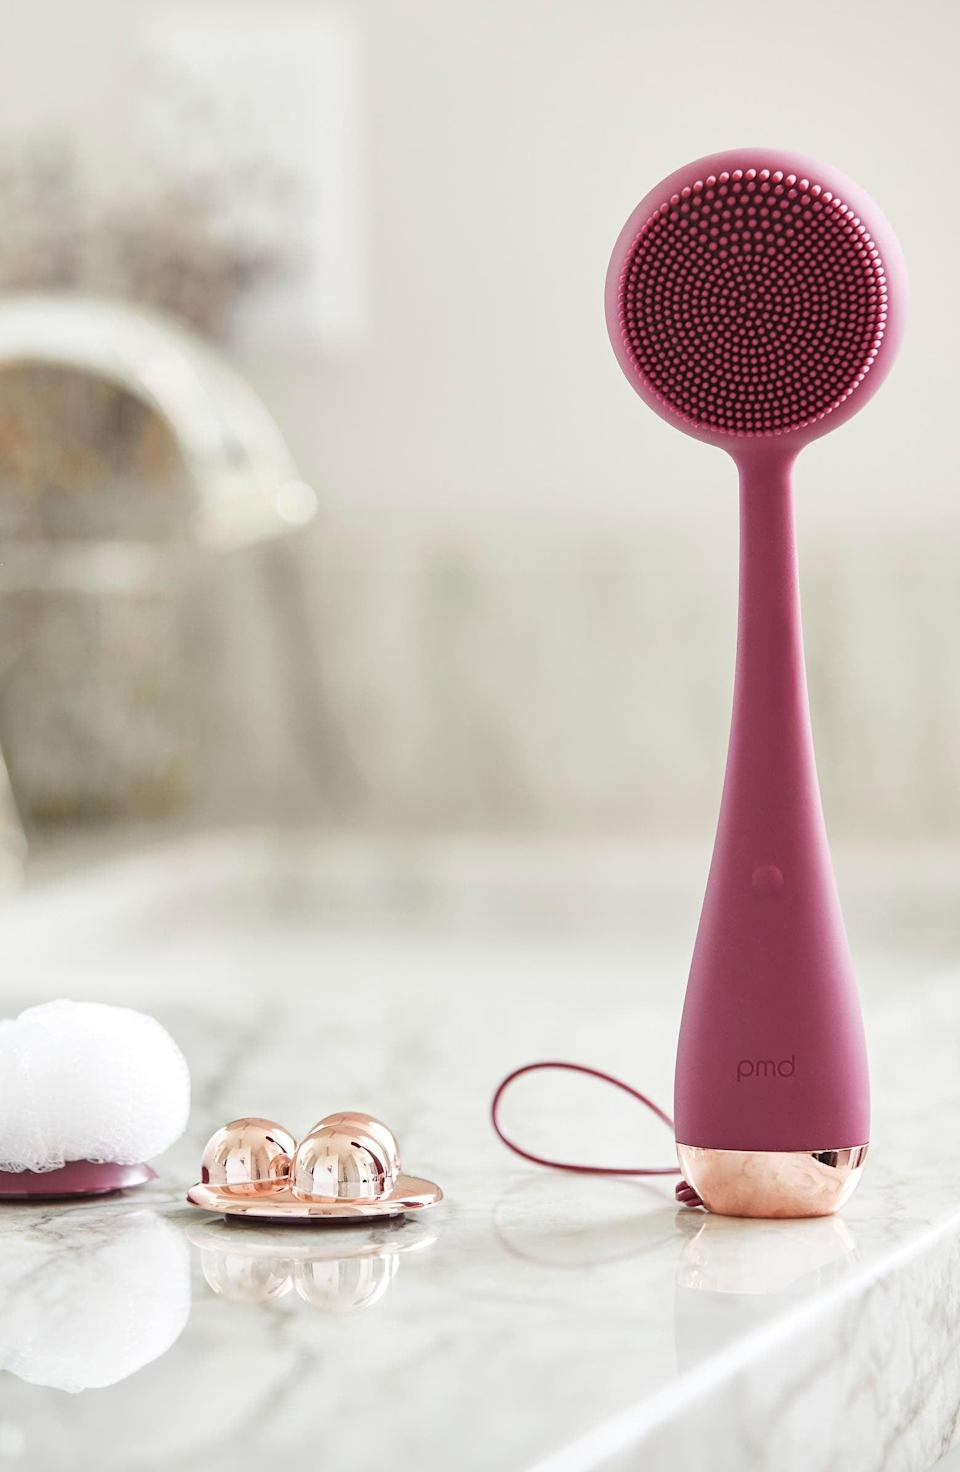 <p>The <span>PMD Clean Body Cleansing Device</span> ($159) will be the only body device you'll need! It has silicon bristles, perfect for cleansing your body from head to toe! It also comes with antibacterial attachements such as a pumice stone and a silver-infused loofah for deeper exfoliation, and a massager for relaxation. The PMD Clean Body Device is odor-resistant, antibacterial, hypoallergenic and waterproof.</p>